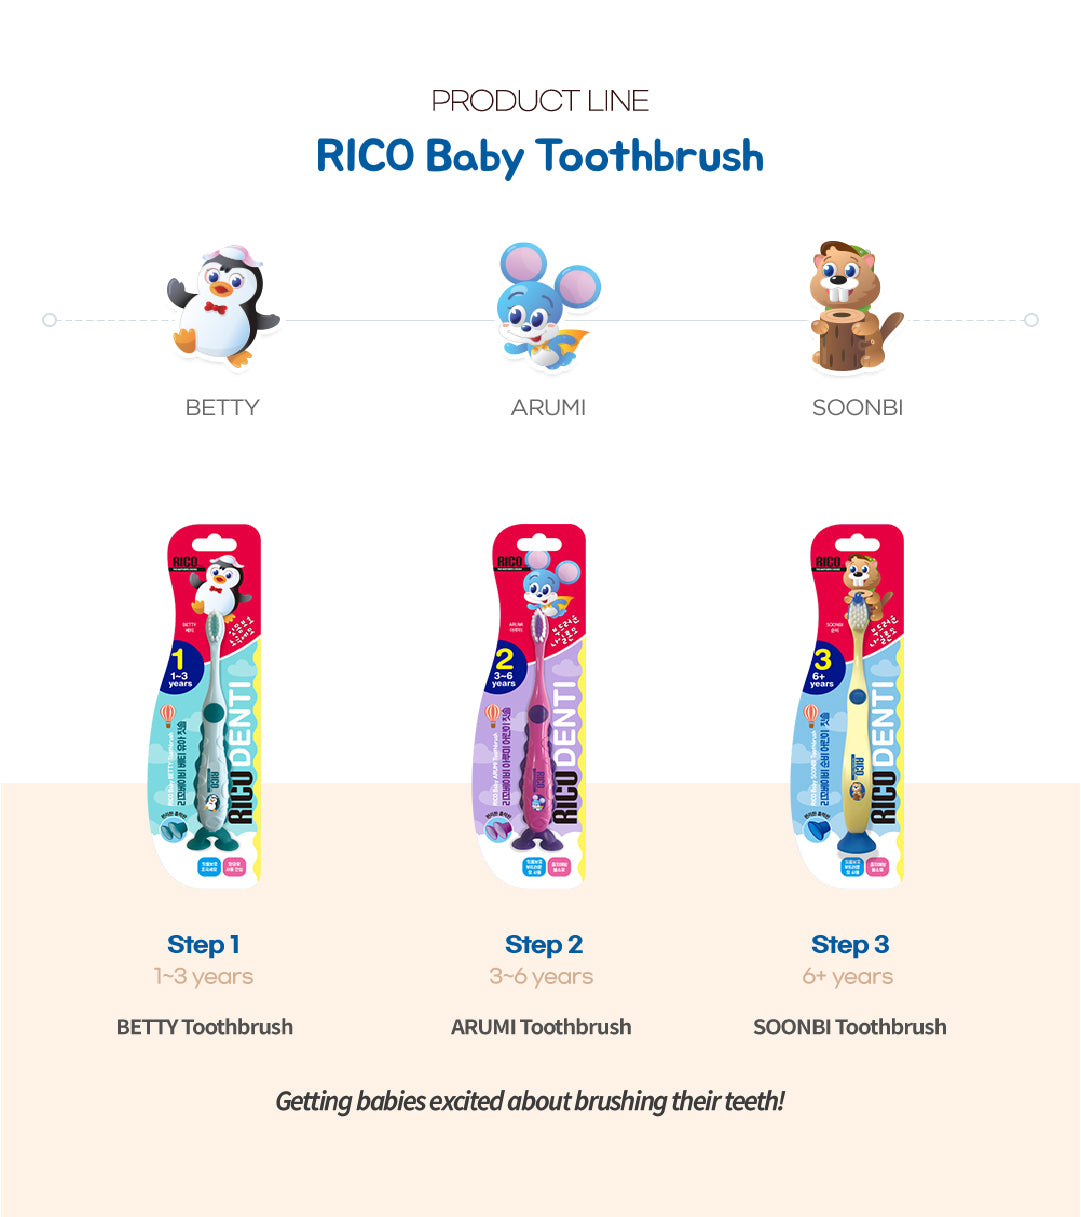 Other RICO Baby Toothbrush